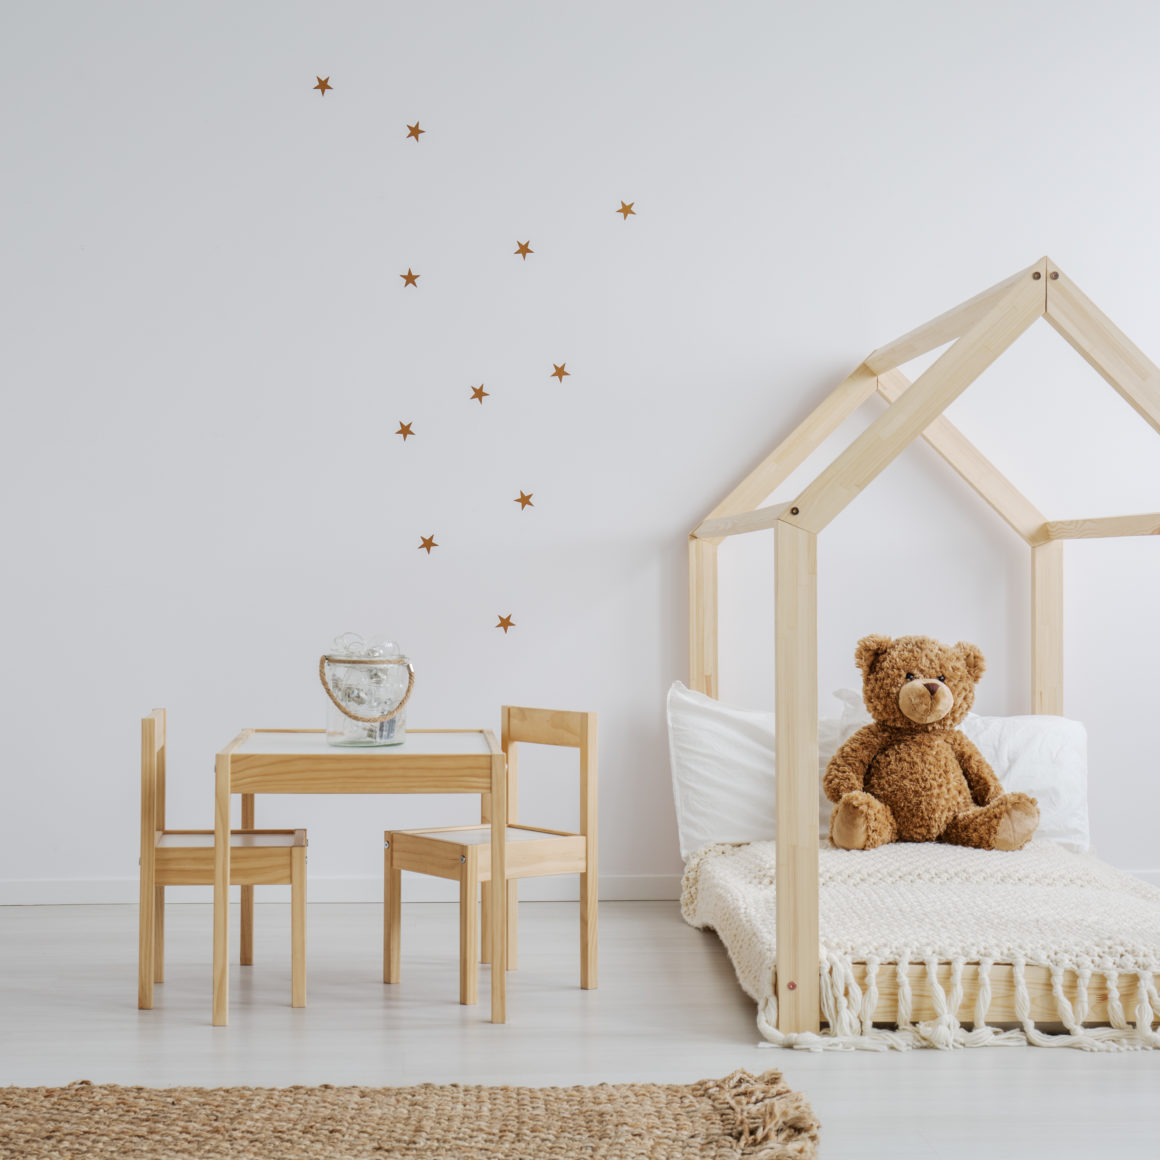 cute furniture. Modren Furniture Cute Furniture Wooden And Set For Kid E Inside F